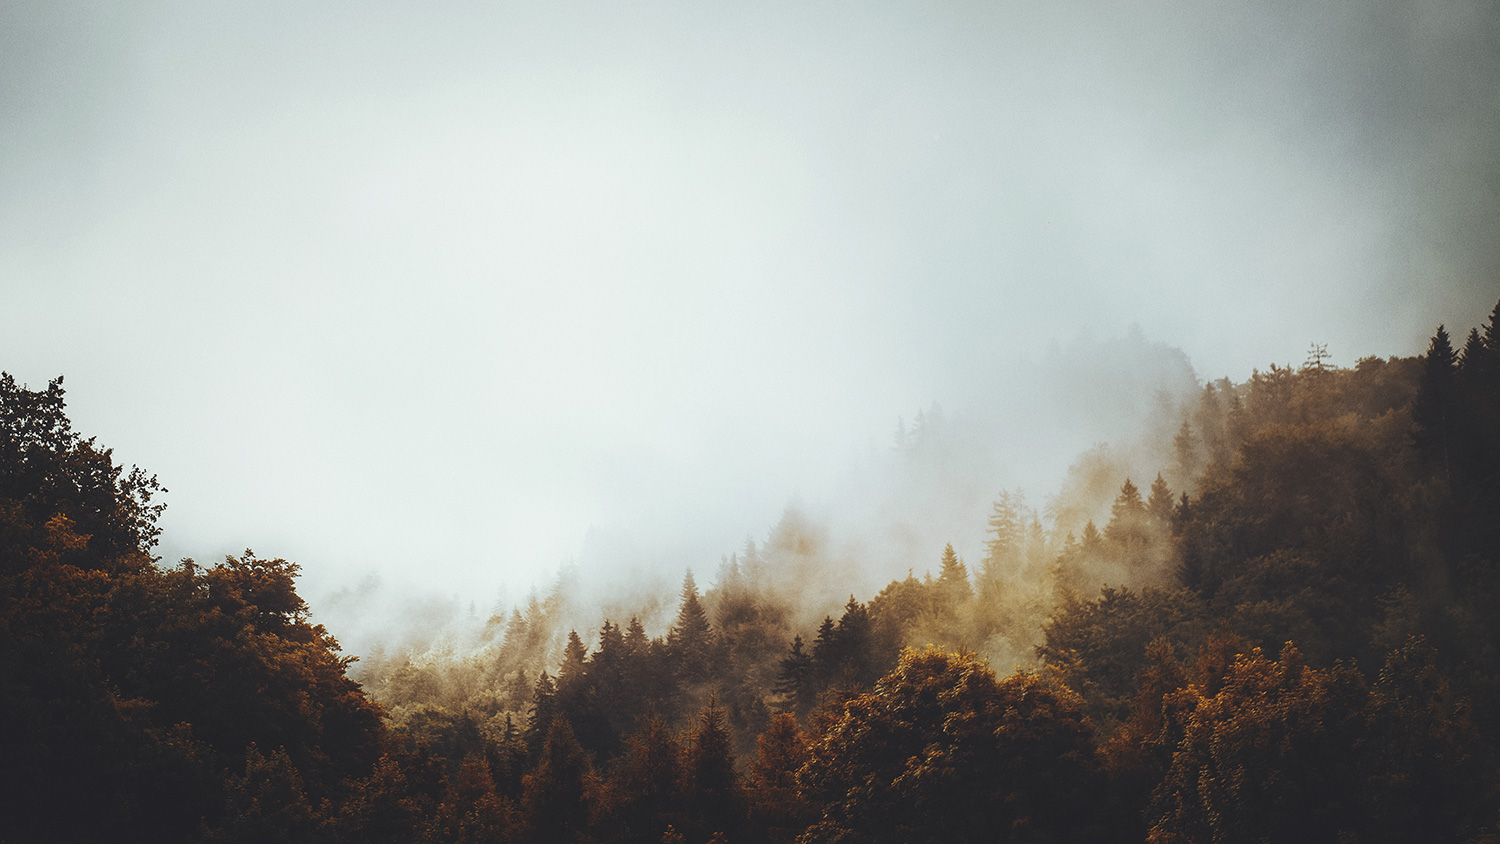 Raphaelle Monvoisin landscape wildscape photography moody ethereal nature wilderness